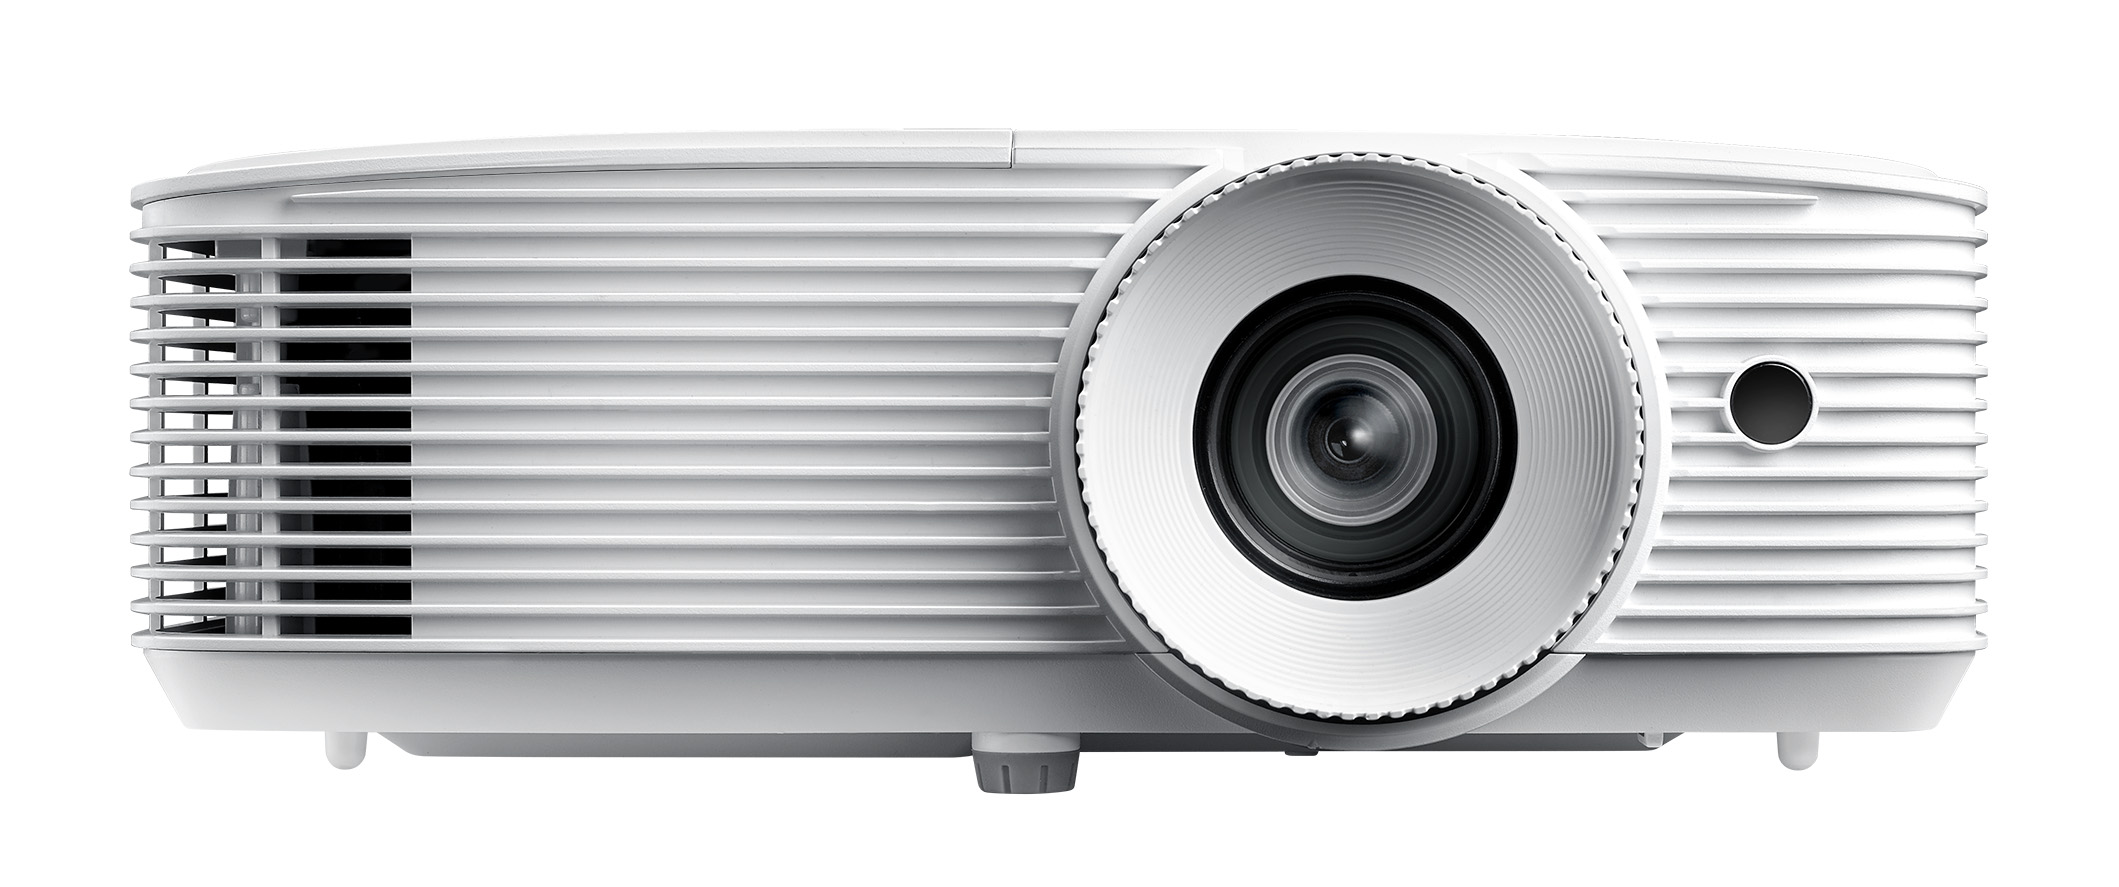 Hd29h Incredible Home Entertainment Projection Optoma